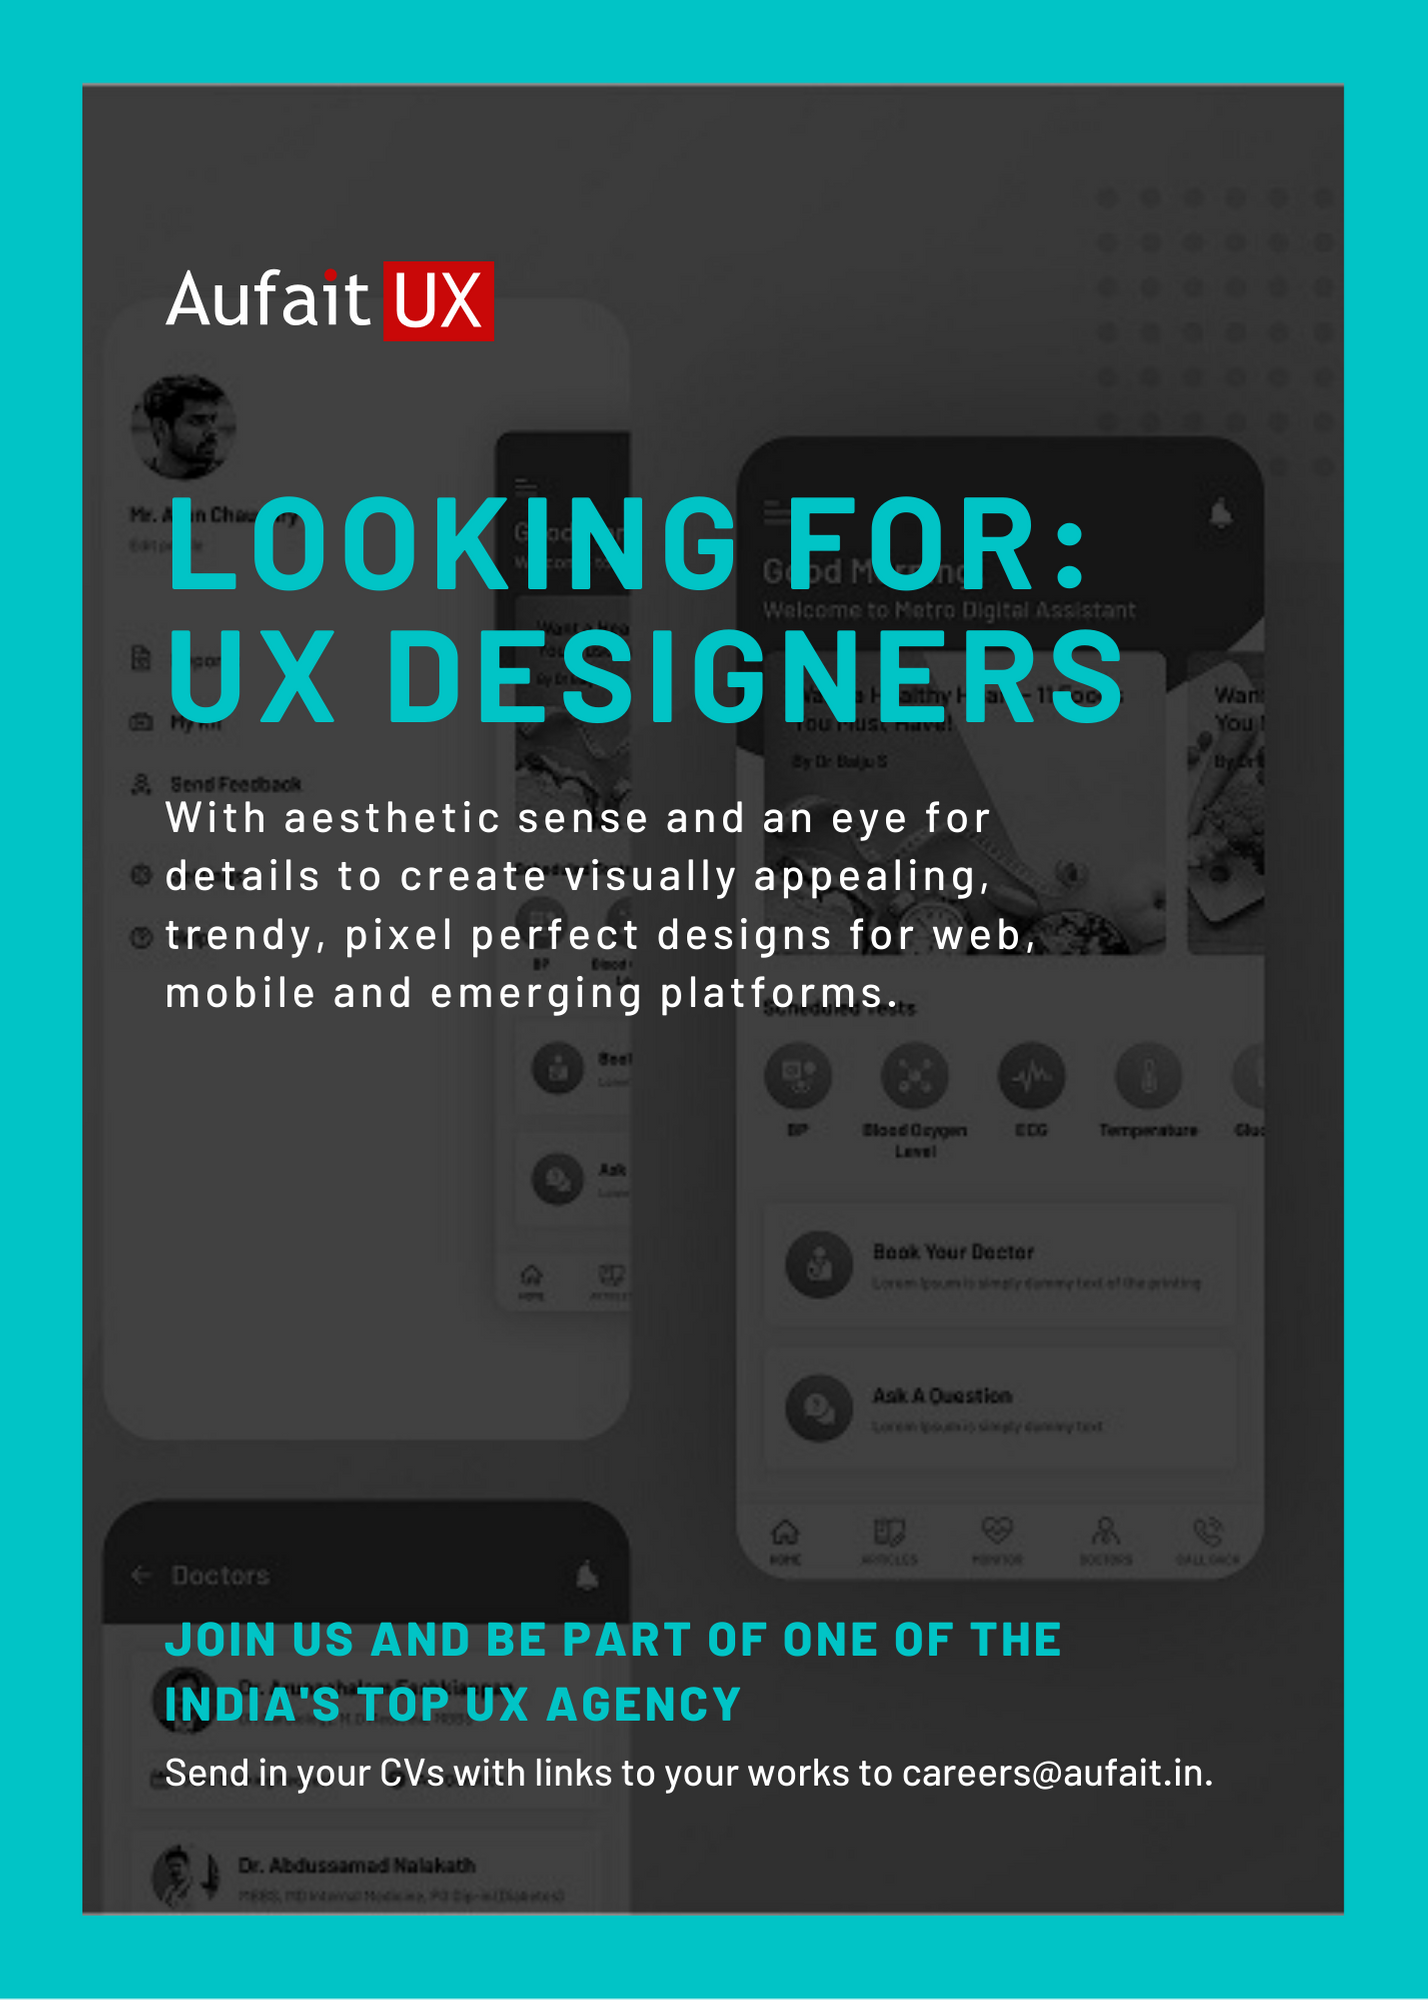 Ux Designer Job Iot Design Design Jobs Mobile App Interface